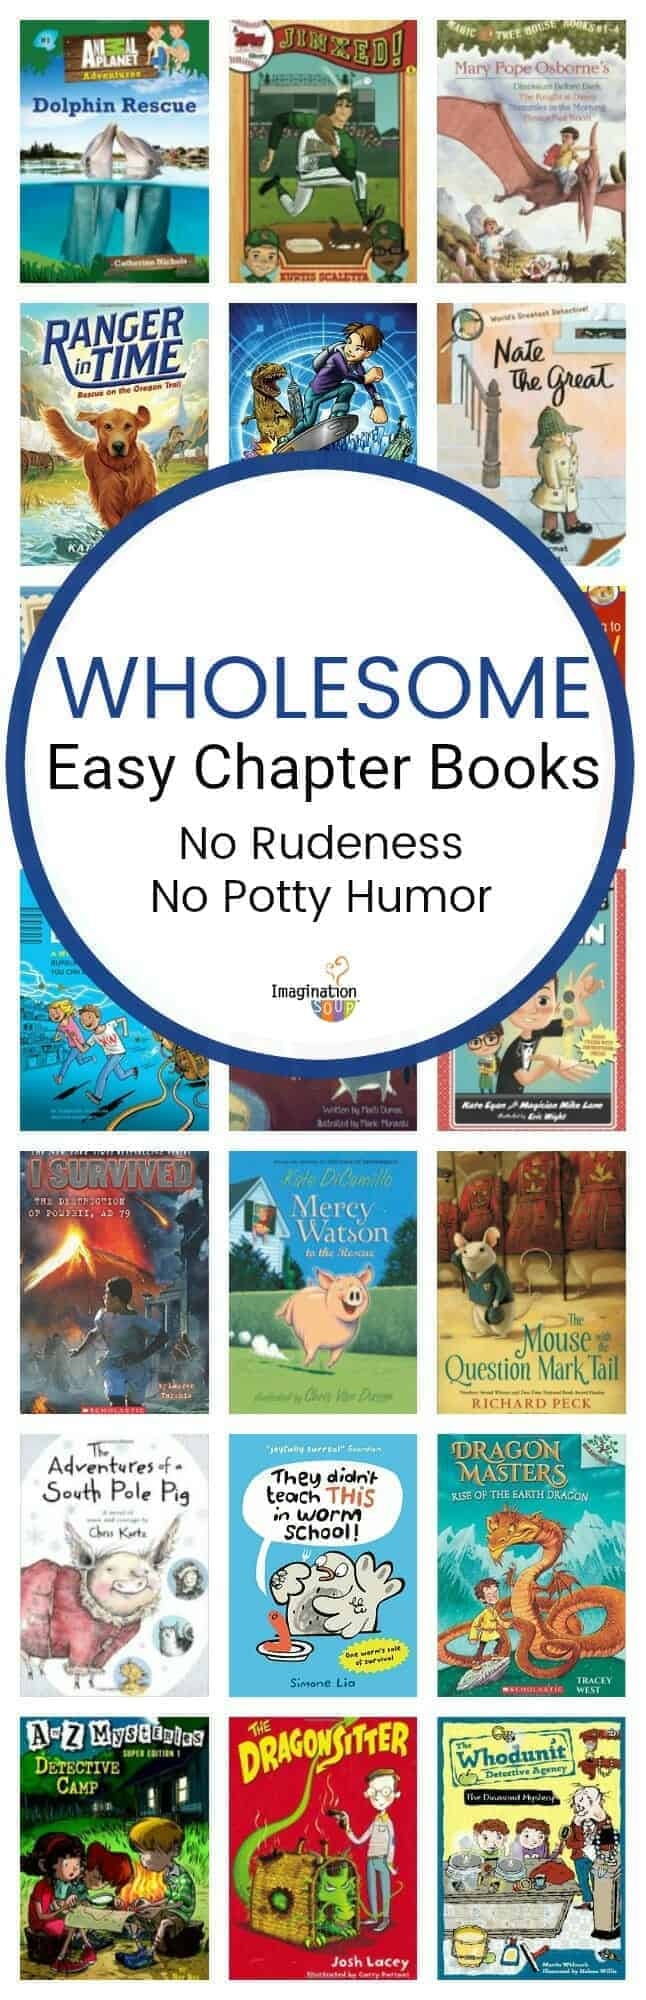 A Wholesome Early Chapter Book List for Boys (No Potty Humor, No Rudeness)